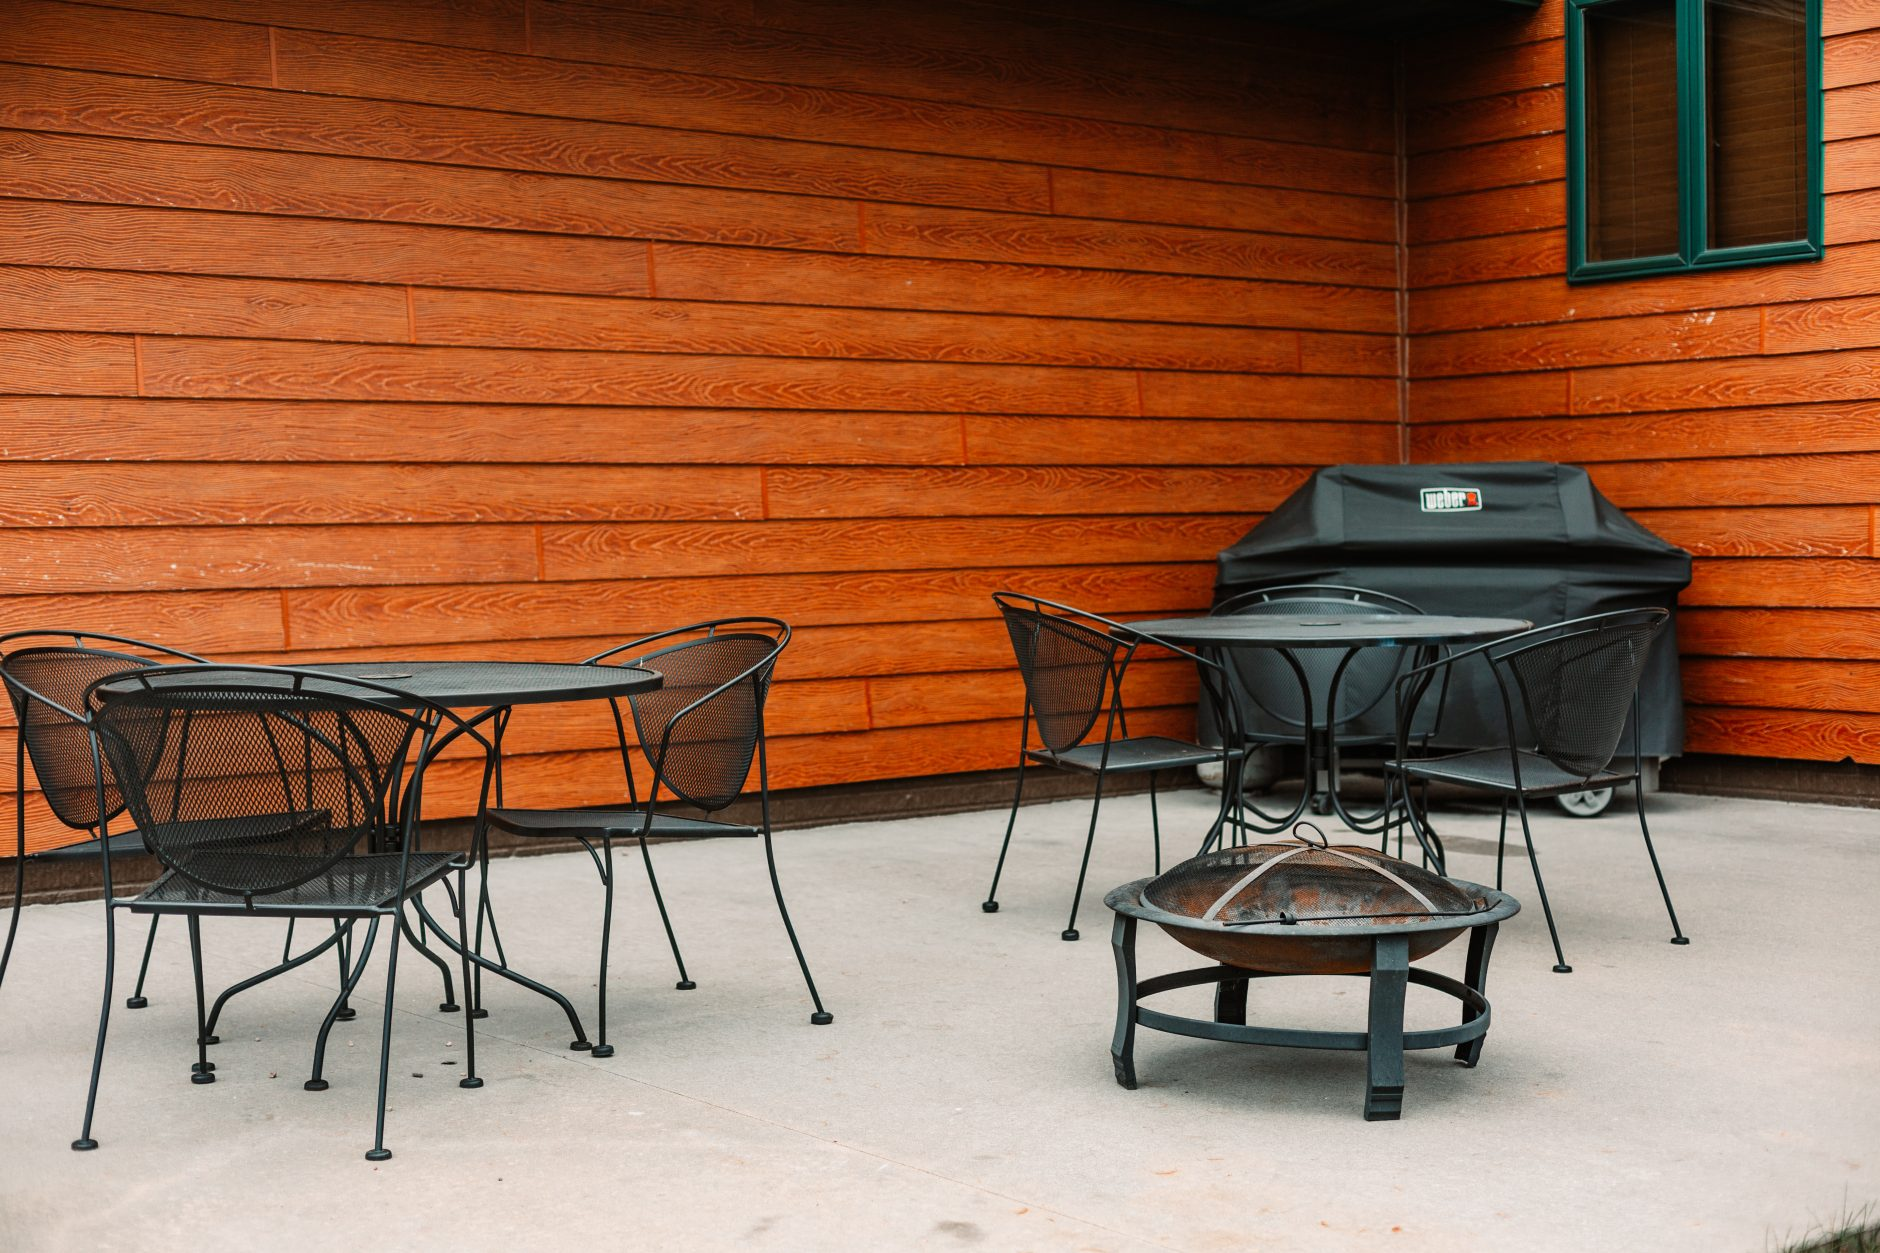 Cottage Patio & Grill